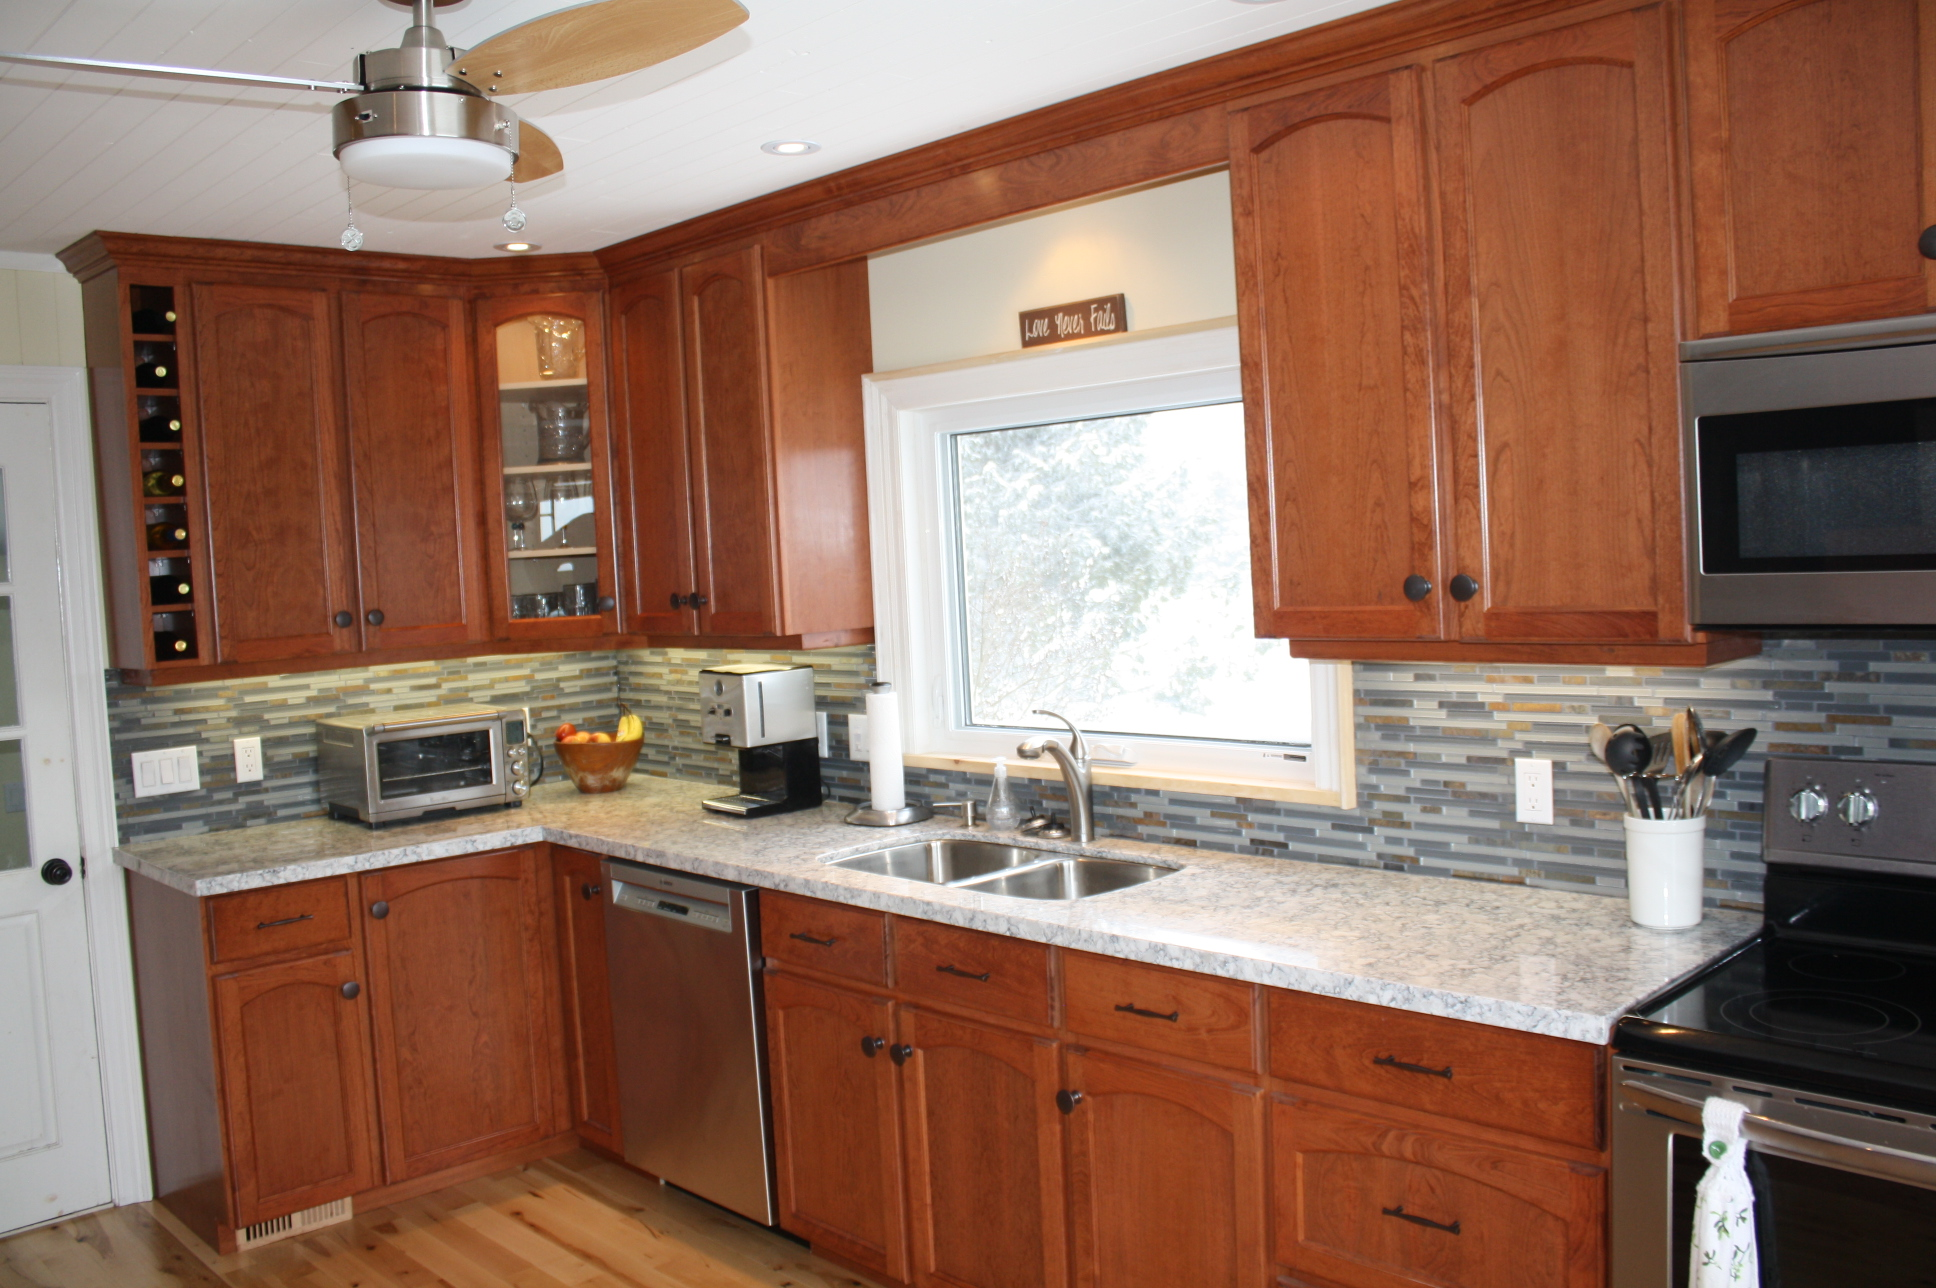 Cherry kitchen cupboards